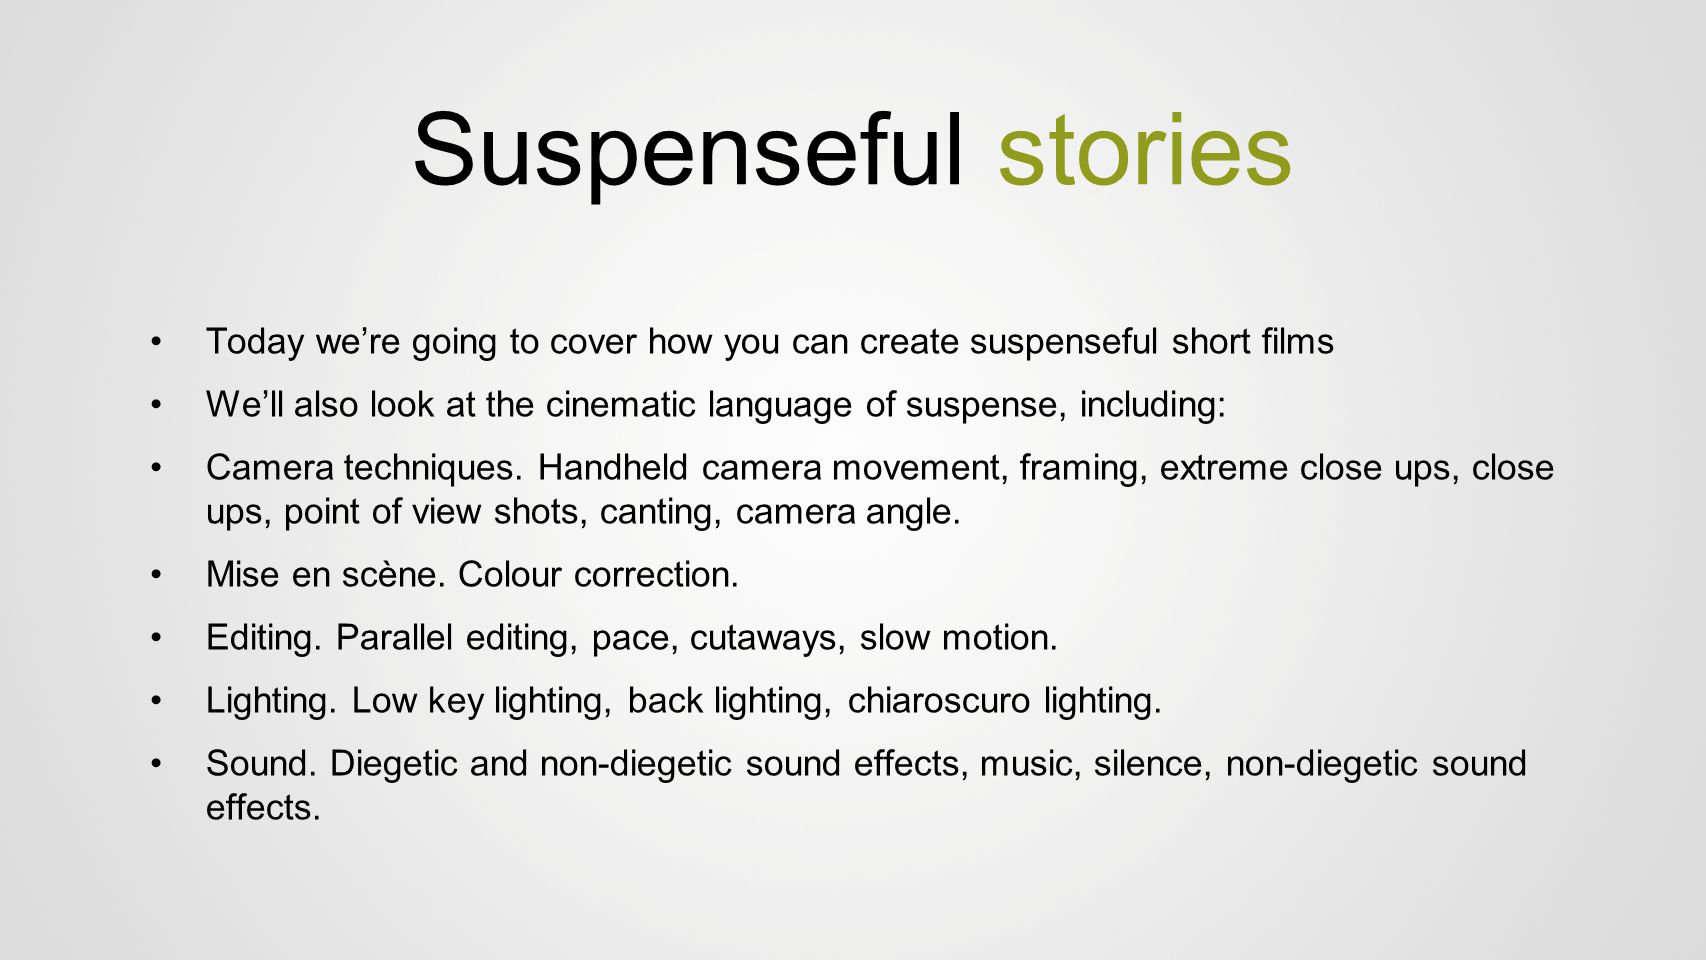 Suspenseful stories Today we're going to cover how you can create suspenseful short films We'll also look at the cinematic language of suspense, inclu